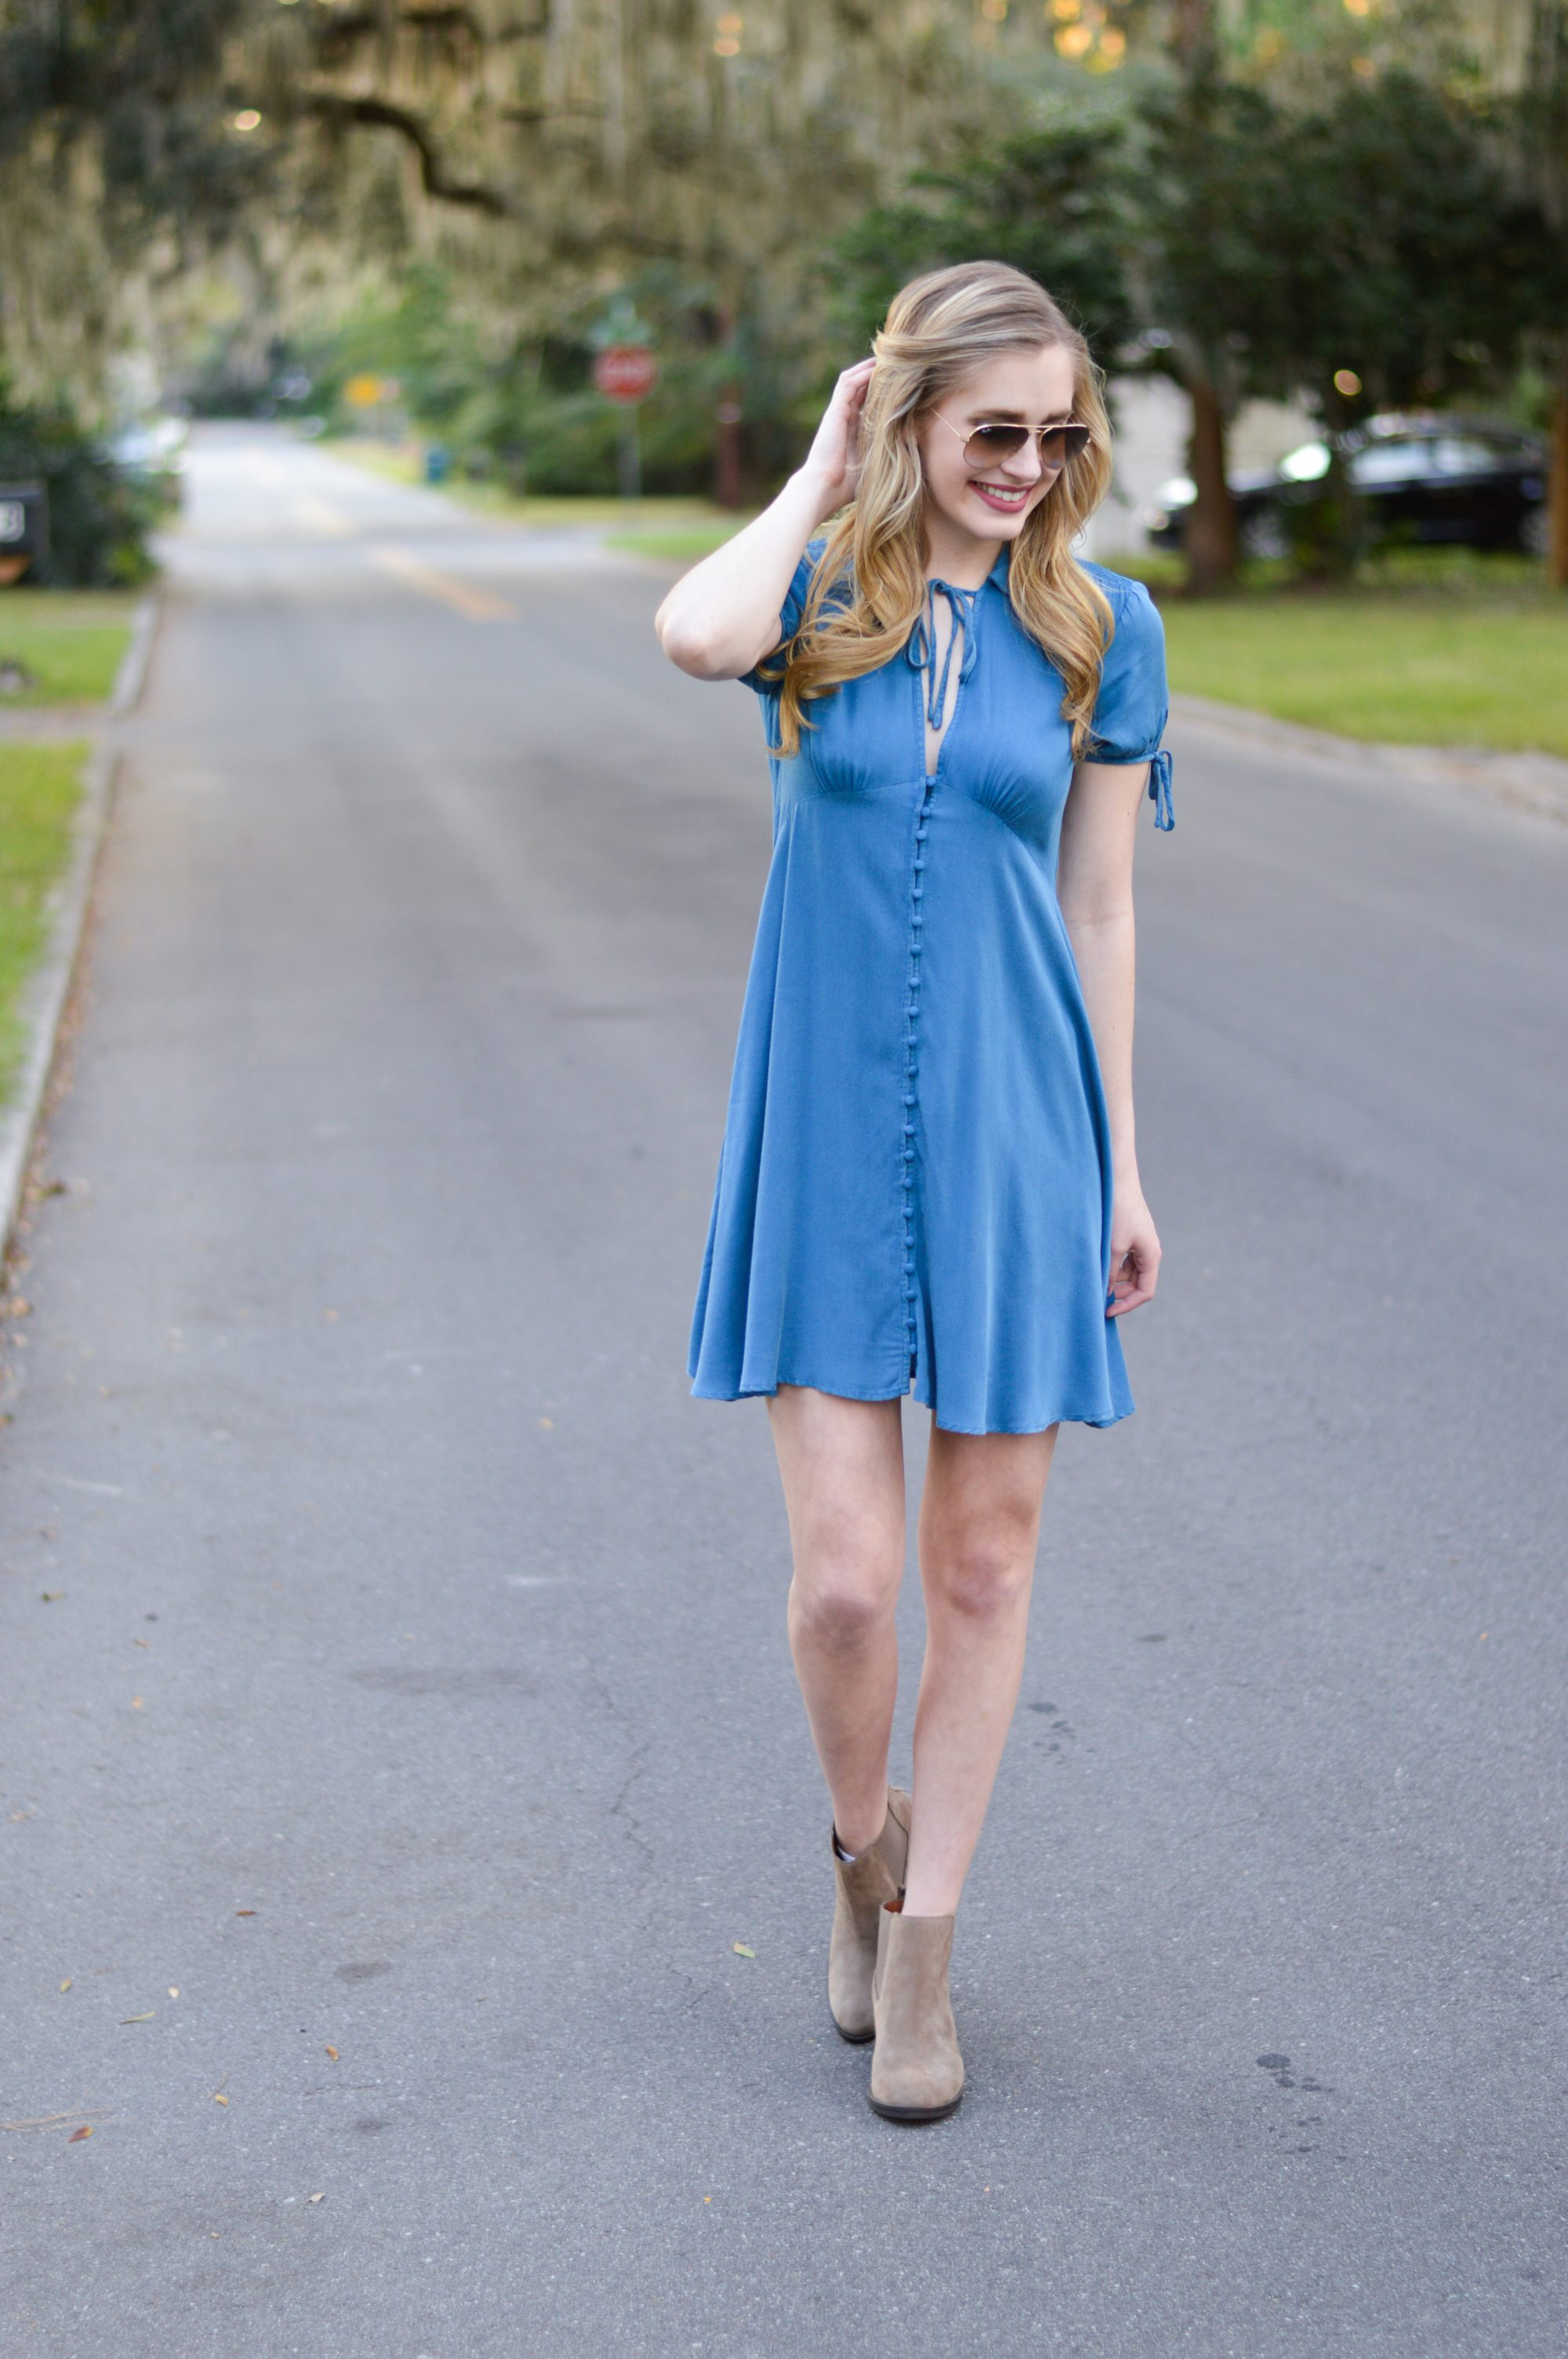 styelled-blog-sweater-weather-fall-70s-style-fashion-blogger-ootd-booties-dress-october-01